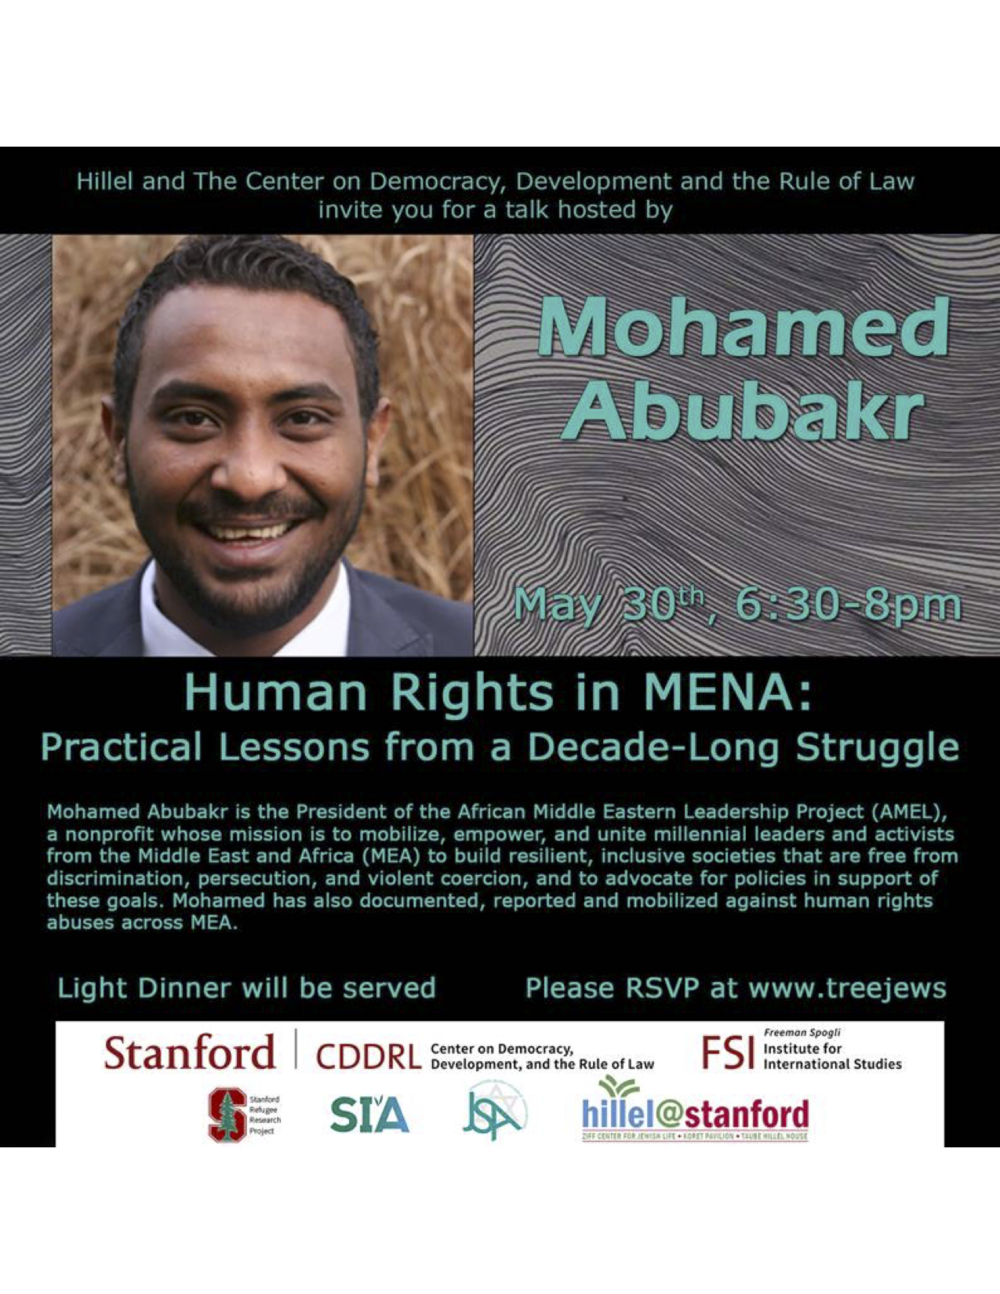 Human Rights in MENA - May 30, 2018